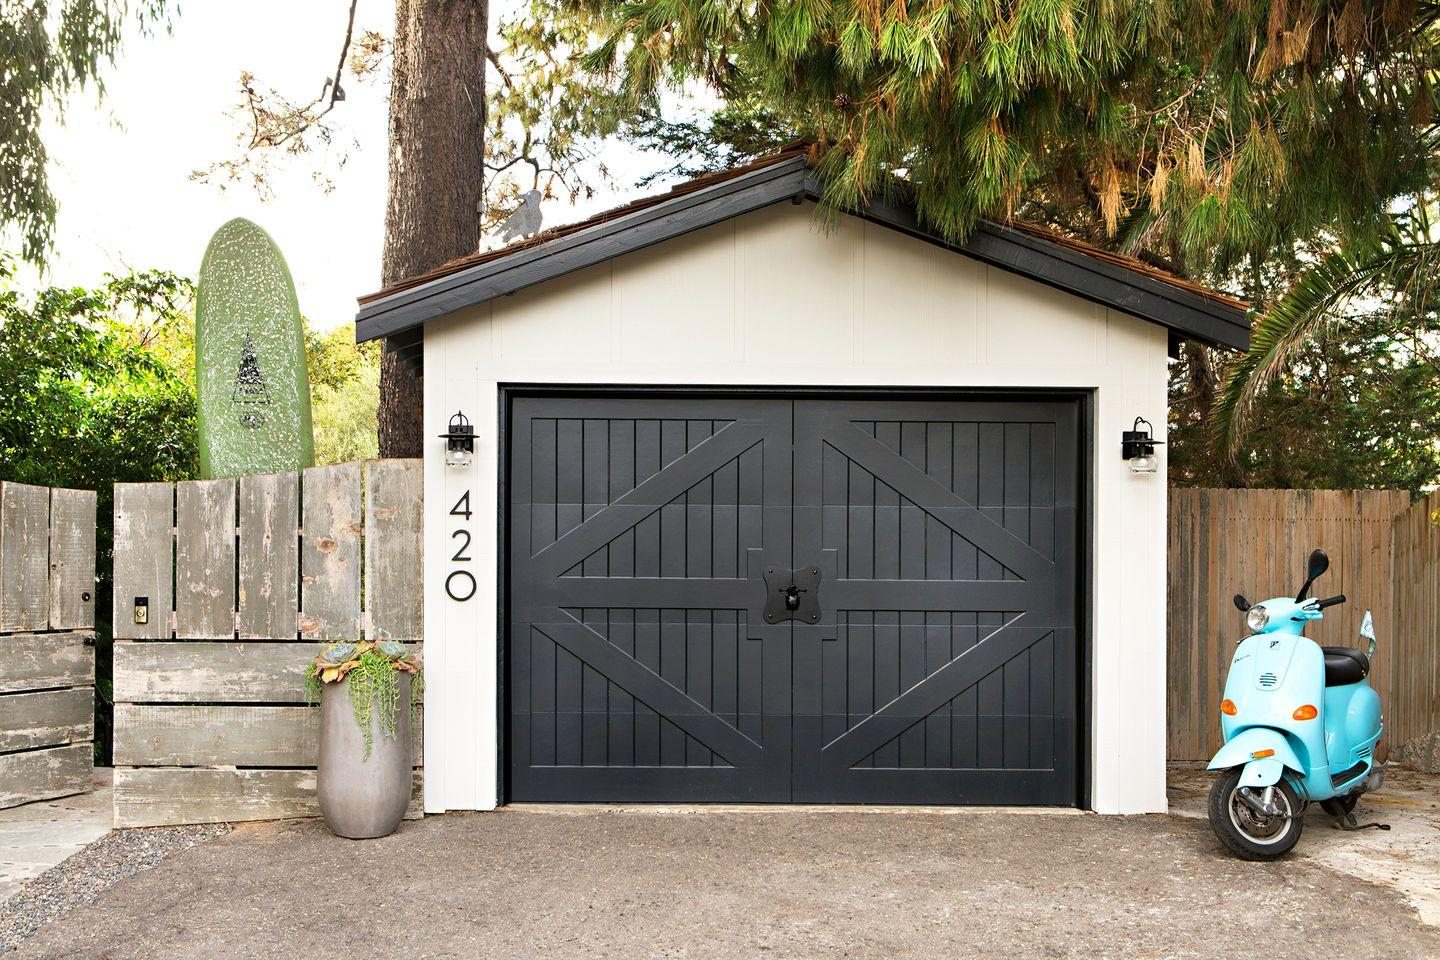 This Is The Secret To Making Your Driveway 10 Times More